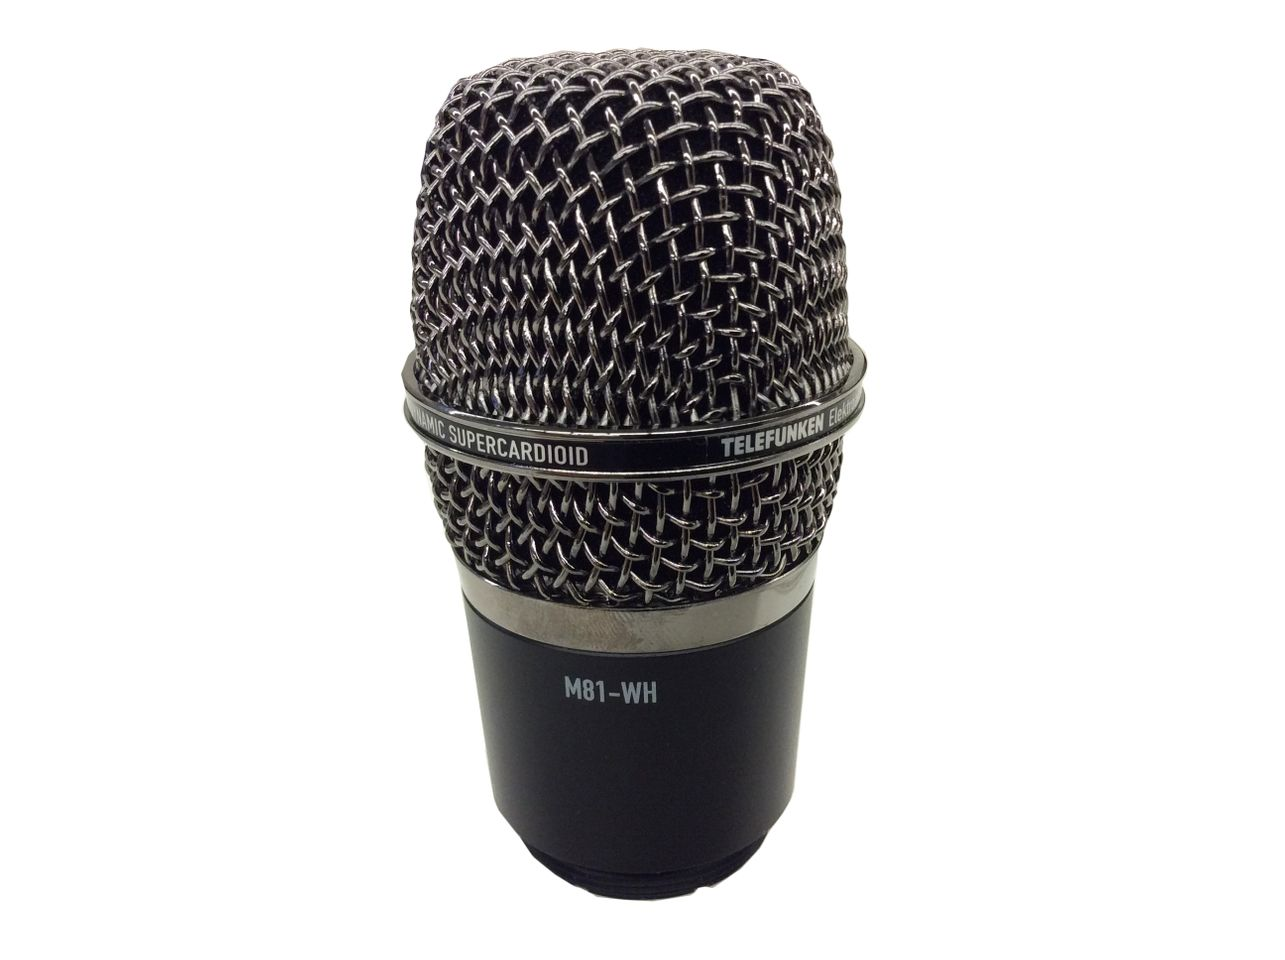 Telefunken M81-WH is available at Hollywood Sound Systems